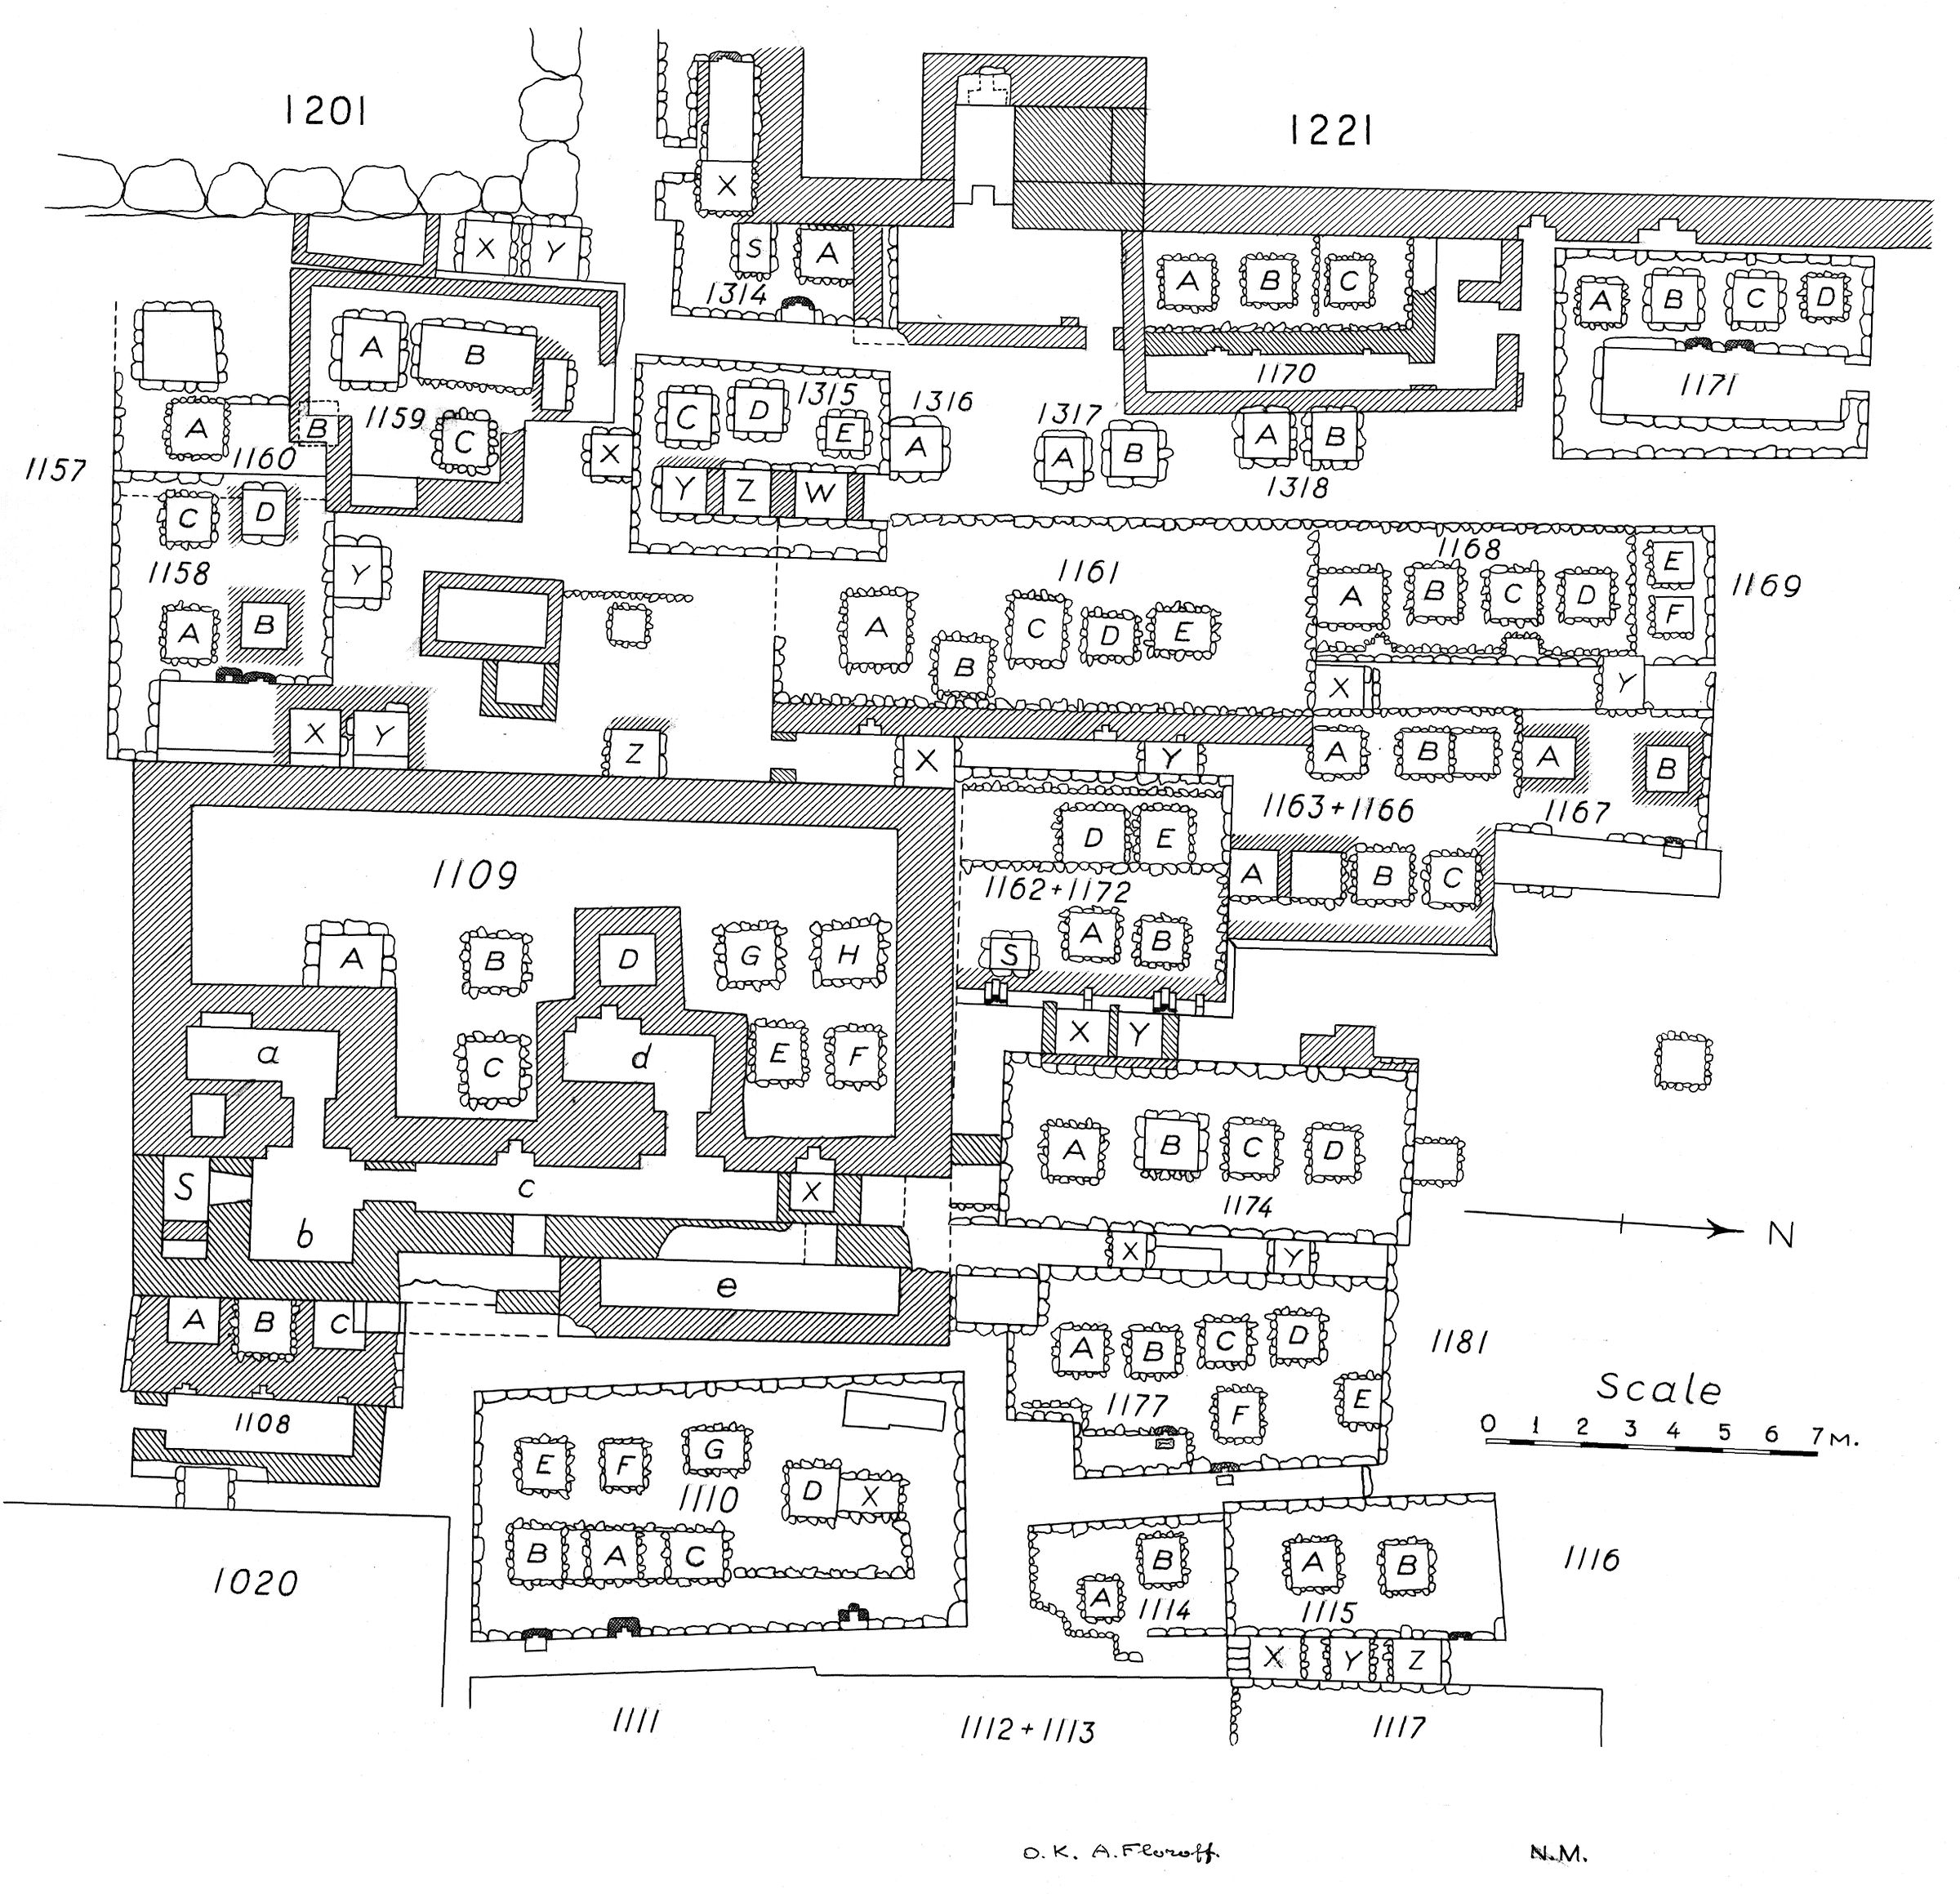 Maps and plans: Plan of cemetery G 1100 (2 of 2)